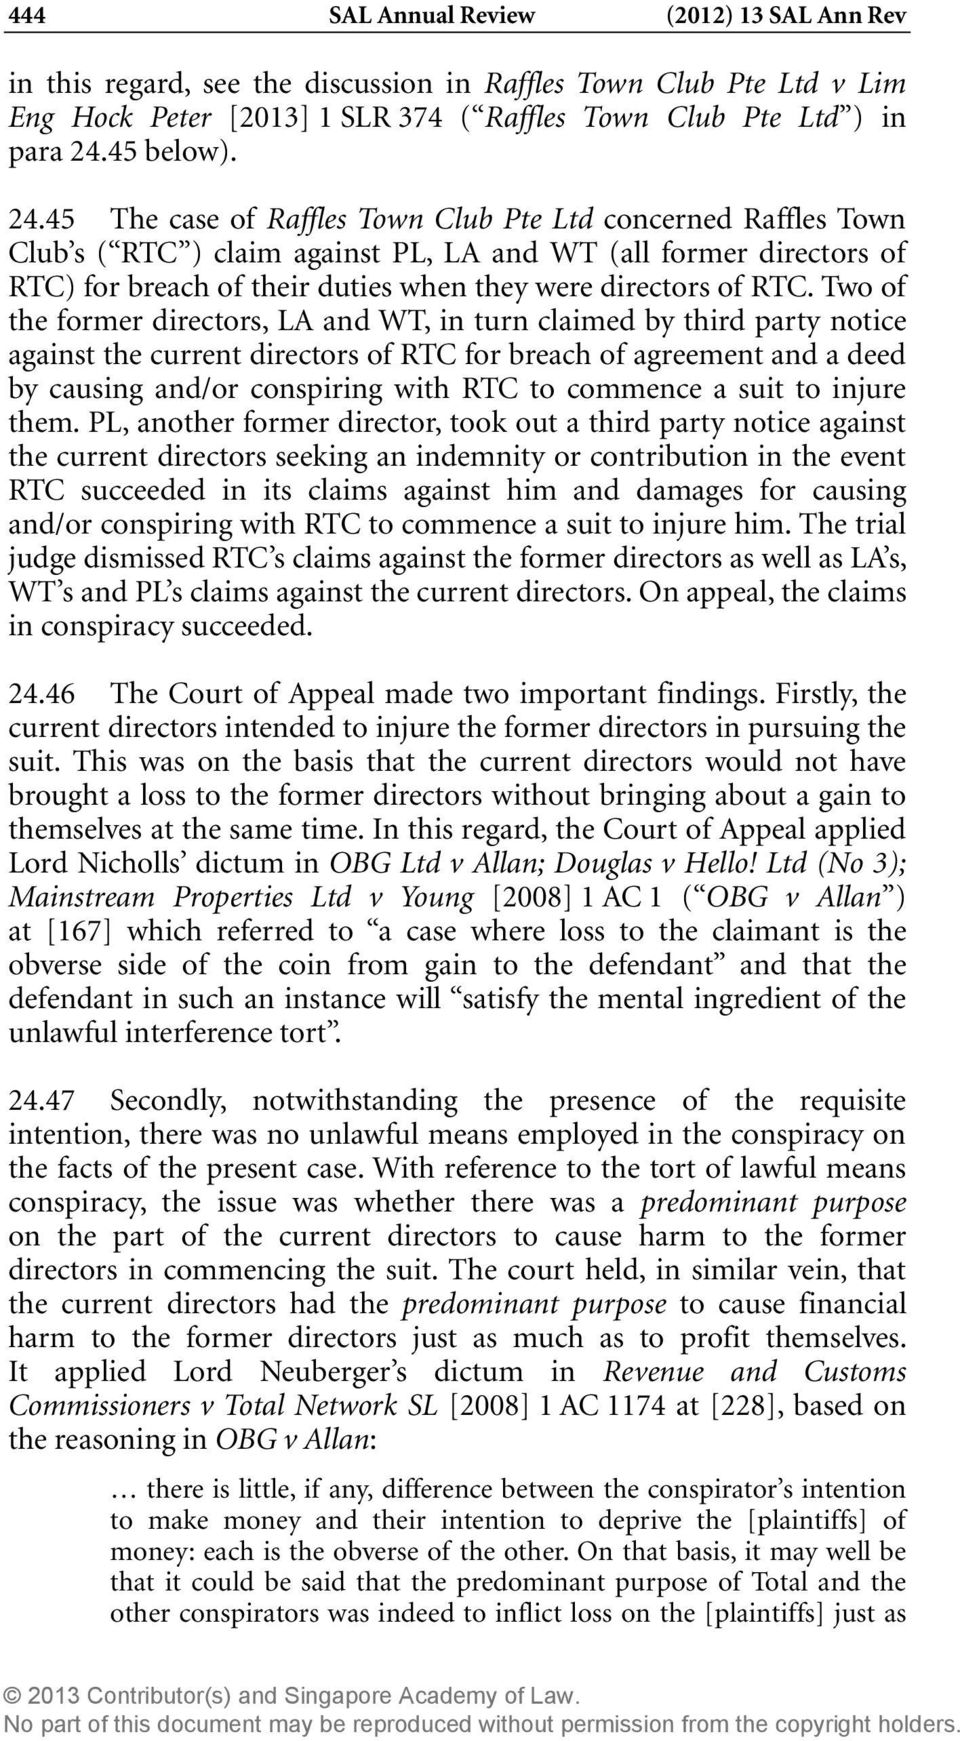 Two of the former directors, LA and WT, in turn claimed by third party notice against the current directors of RTC for breach of agreement and a deed by causing and/or conspiring with RTC to commence